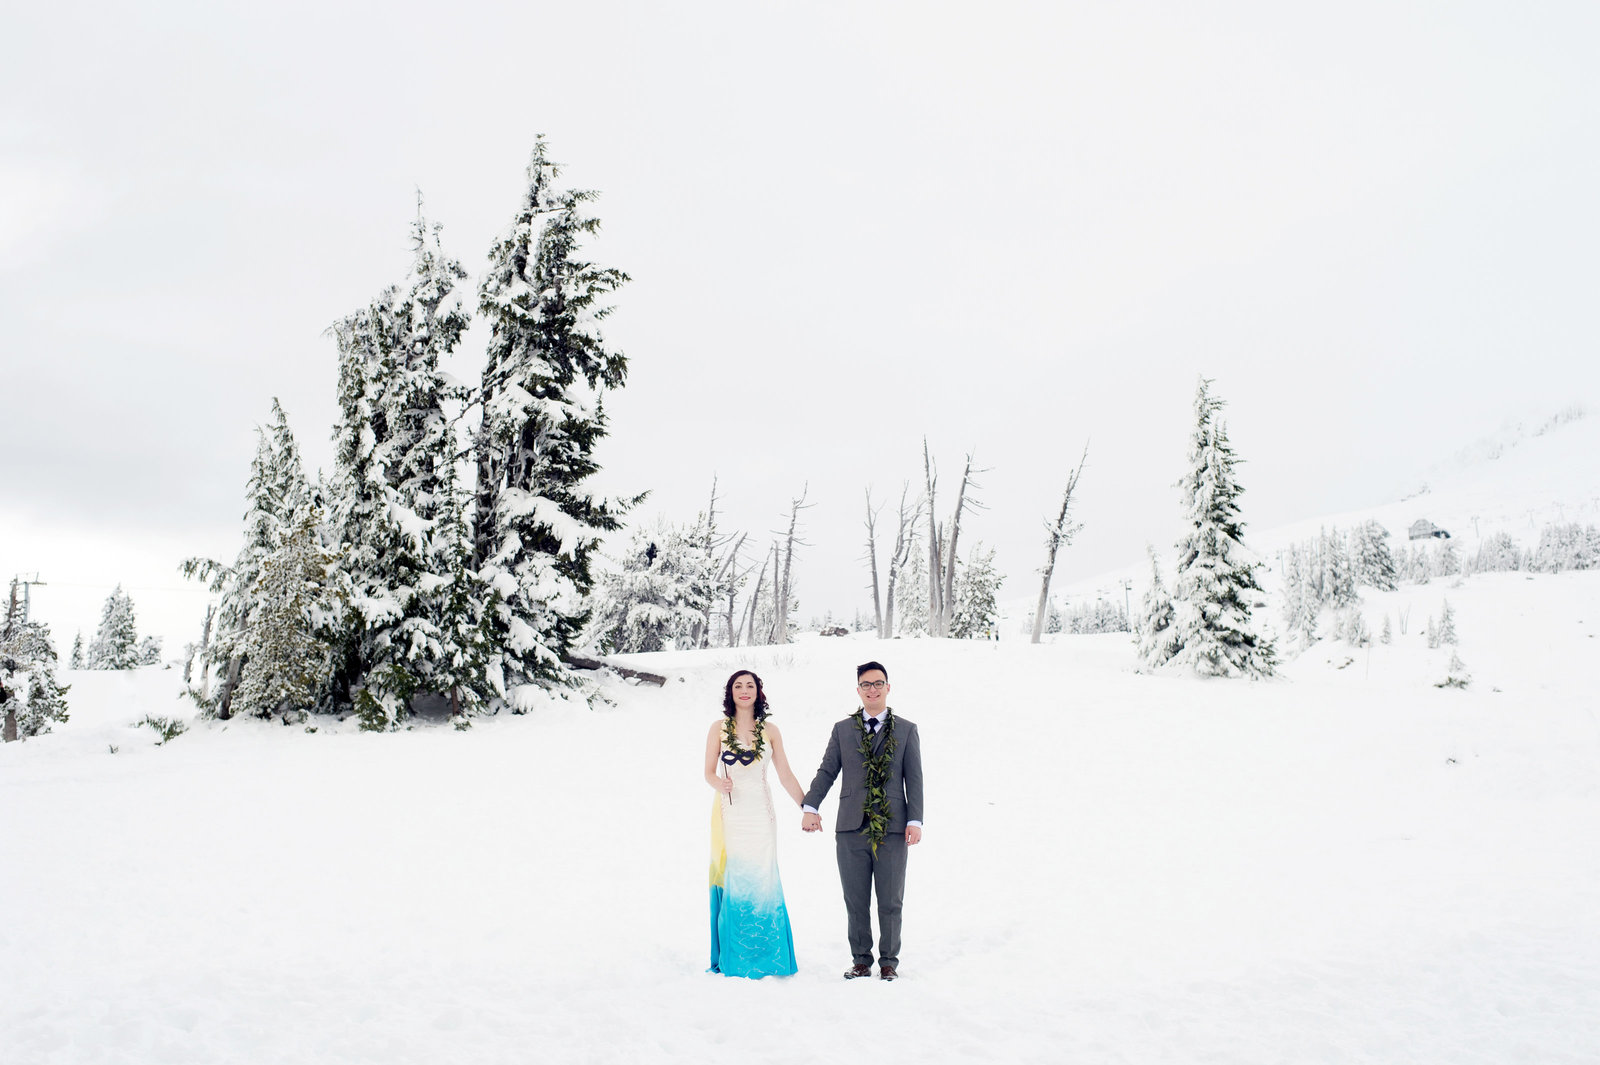 Crystal Genes Photography TIMBERLINE LODGE WEDDING161126-130045